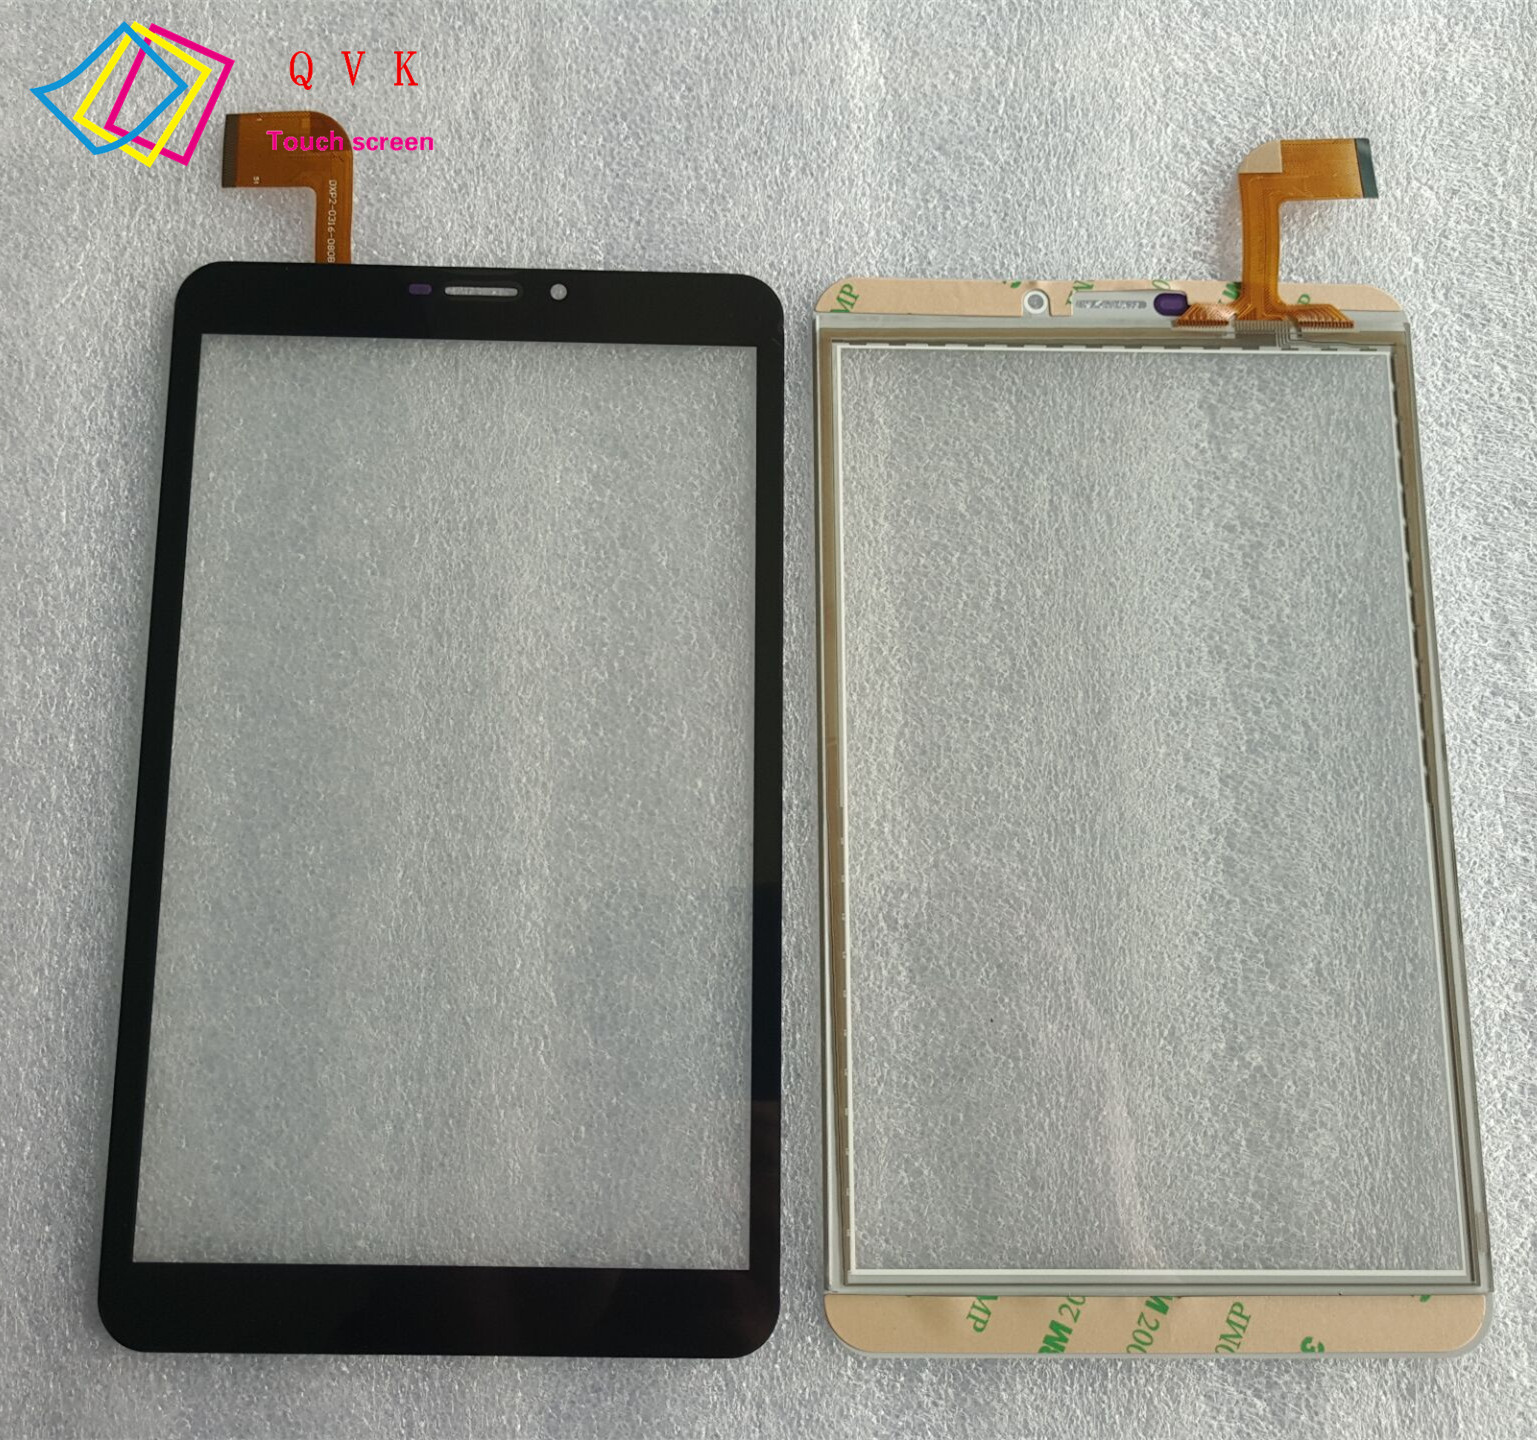 Black 8 Inch For Irbis TZ877 TZ 877 TZ877t Tablet Pc Capacitive Touch Screen Glass Digitizer Panel Free Shipping